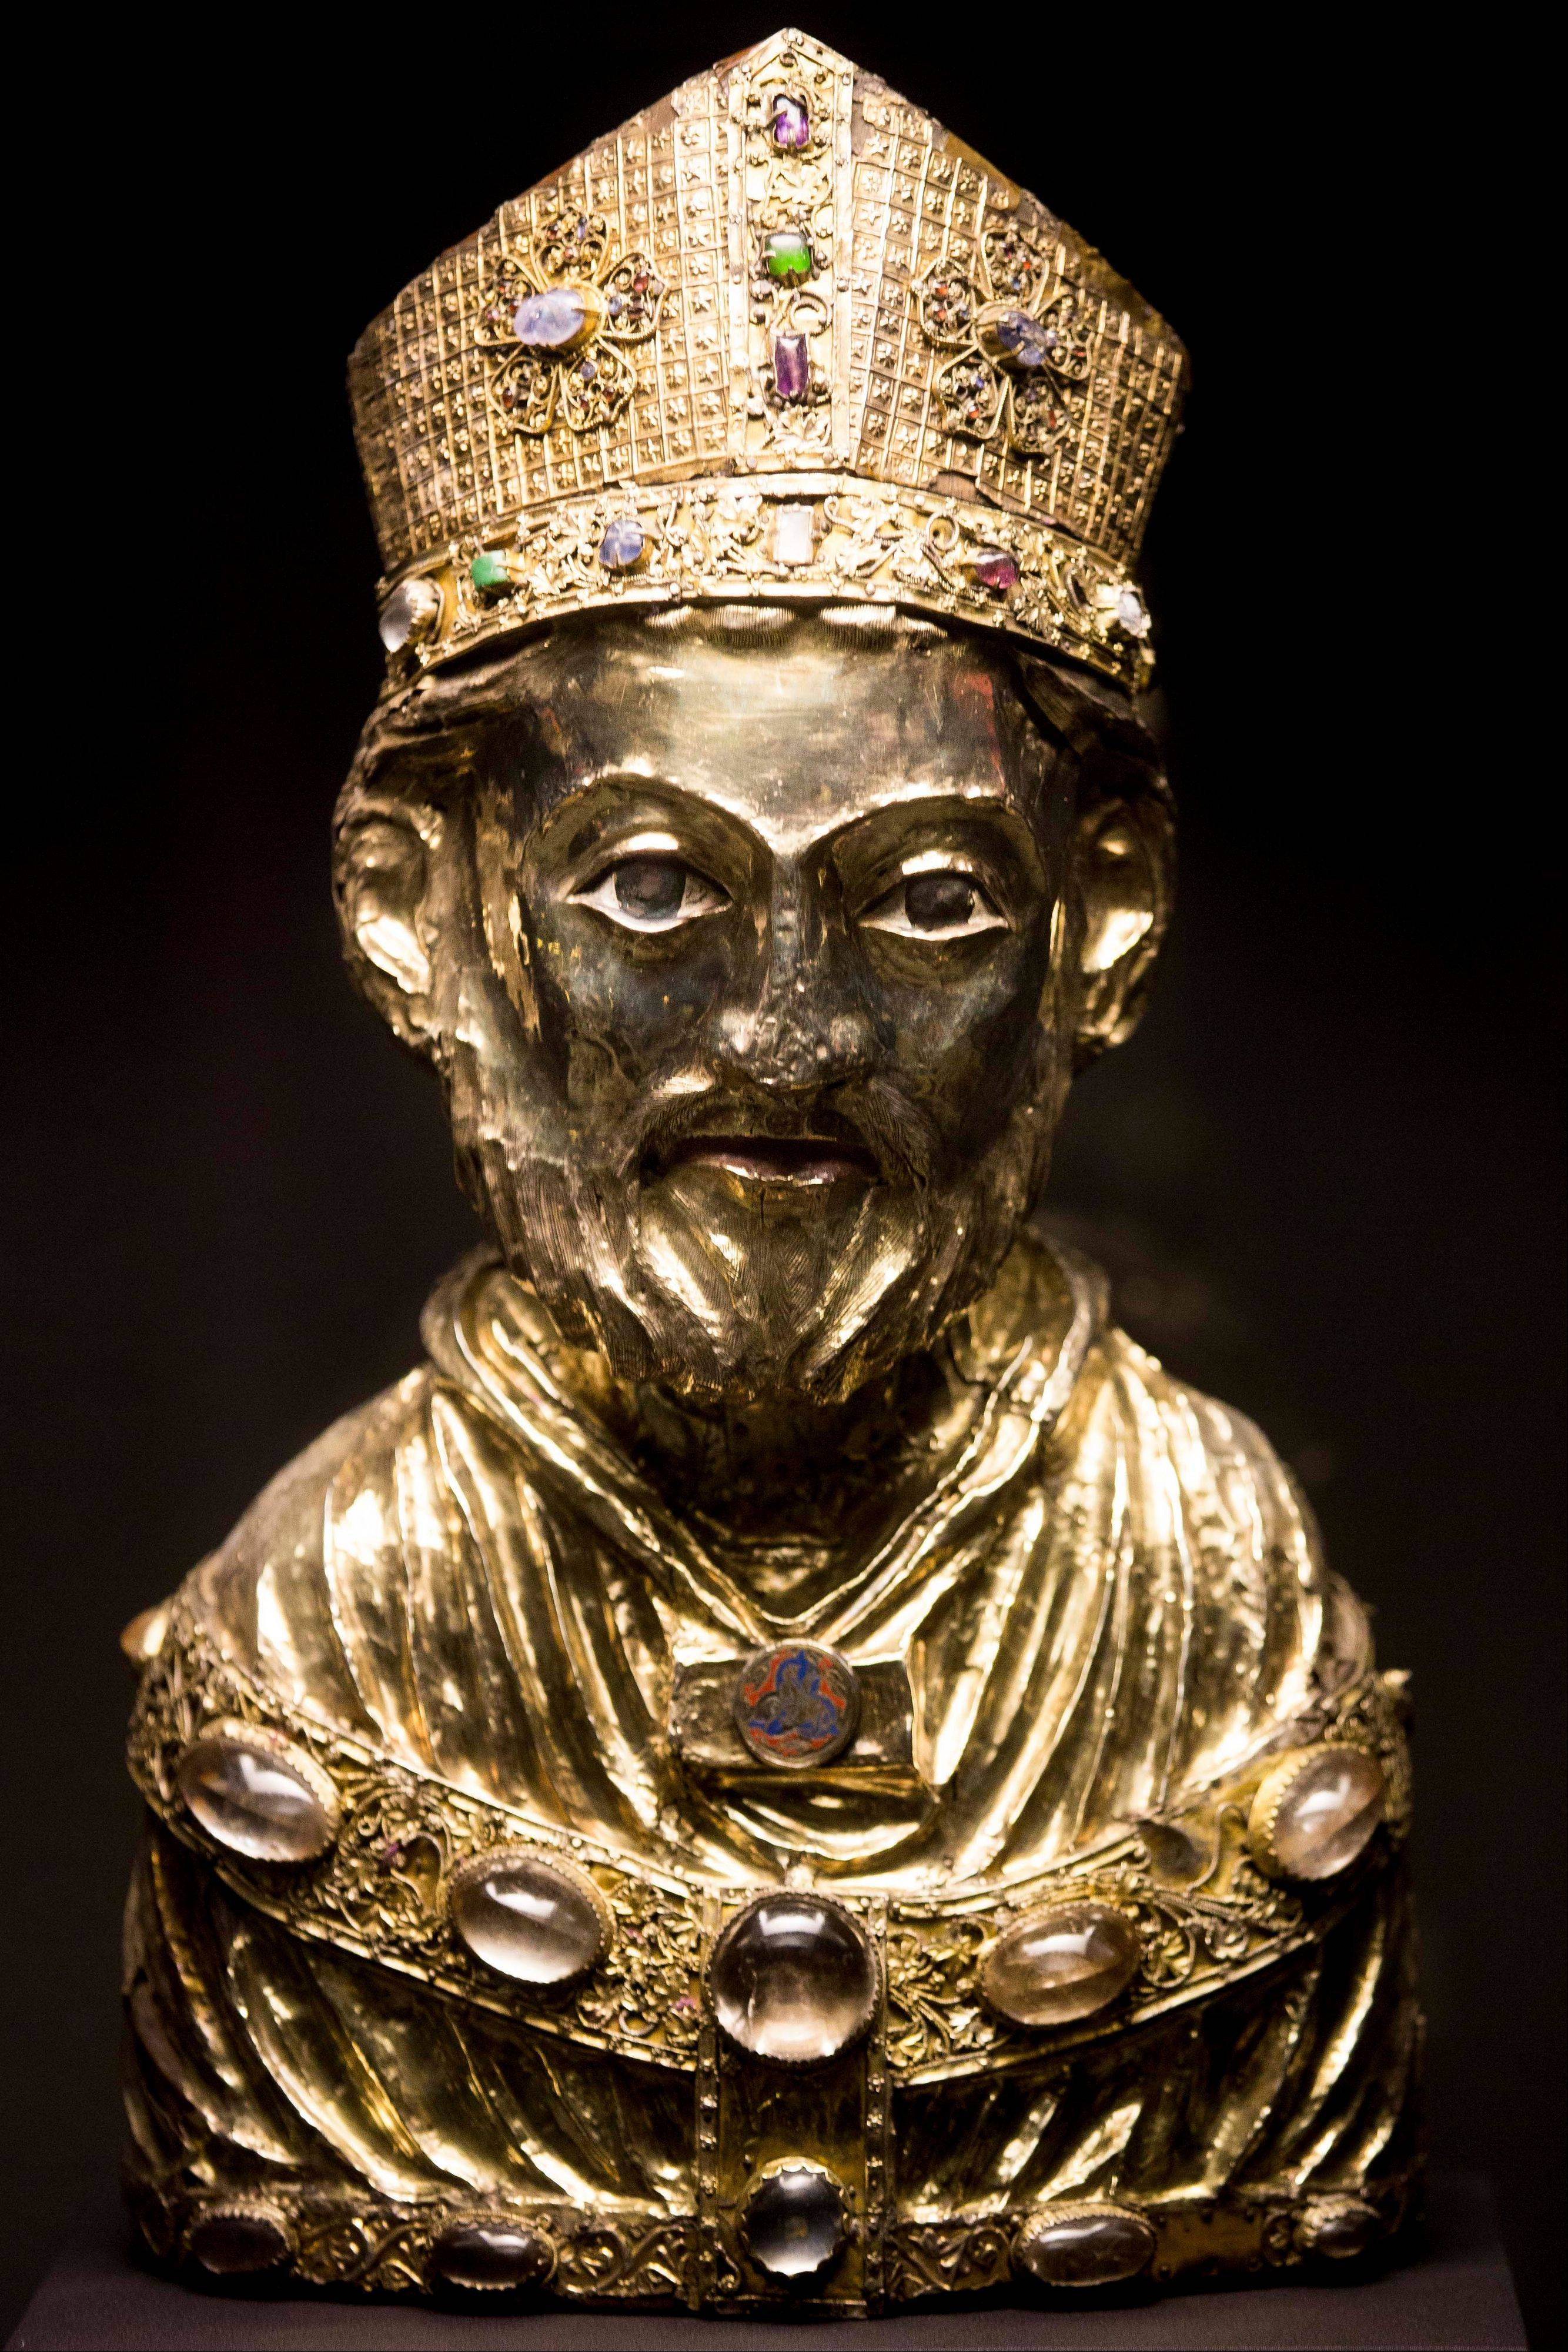 A medieval reliquary bust of St. Blaise.